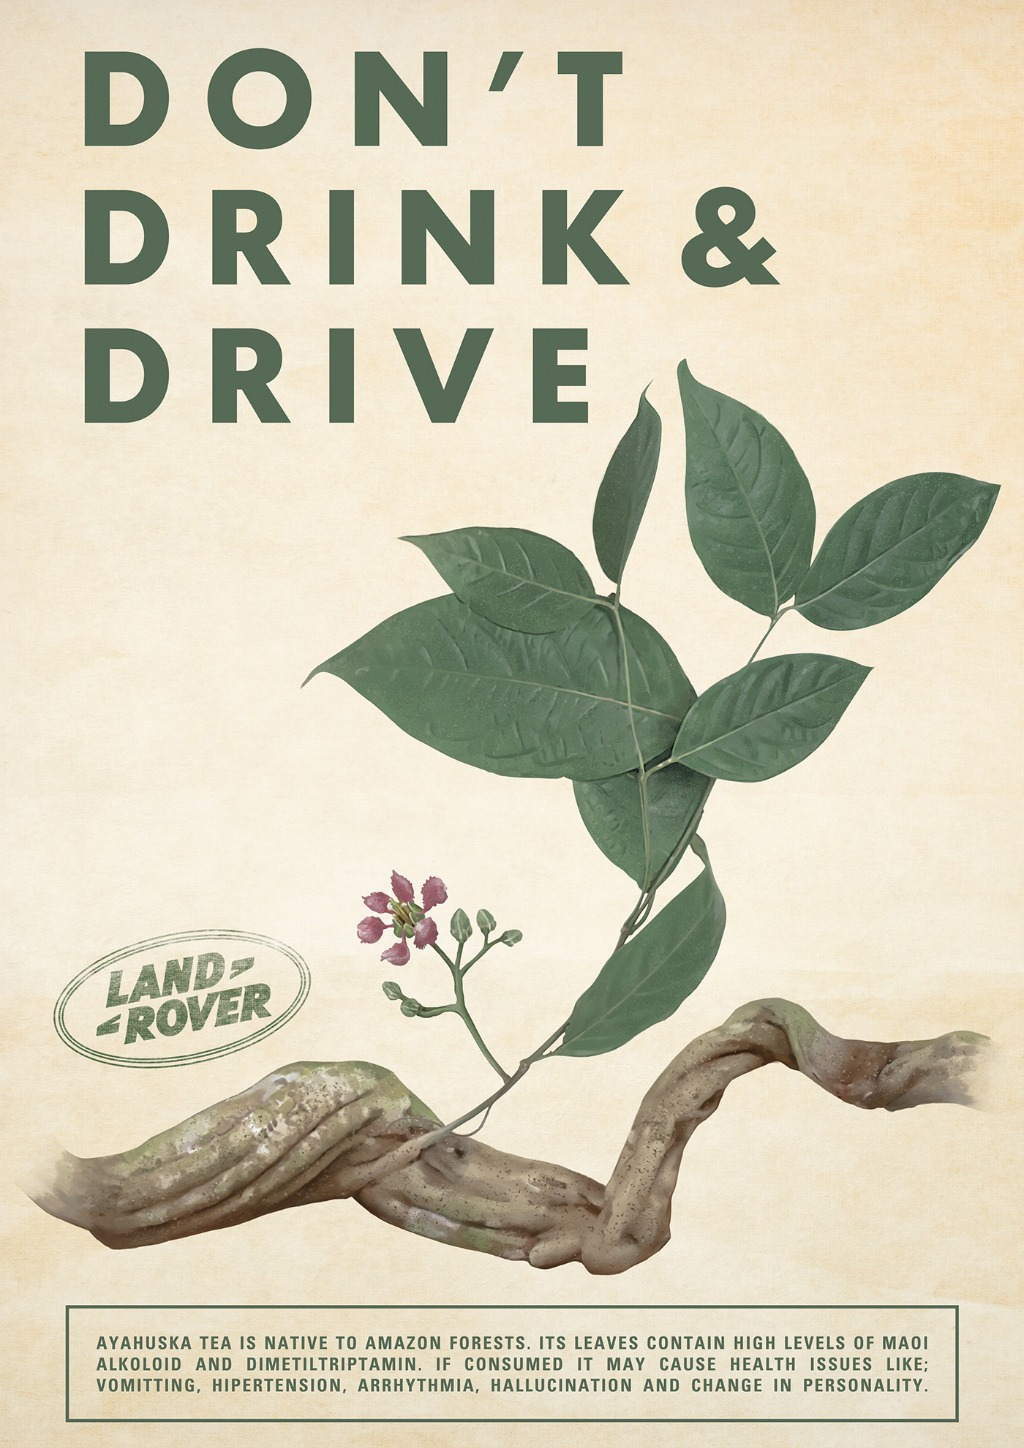 Don't Drink & Drive - Ayahuasca